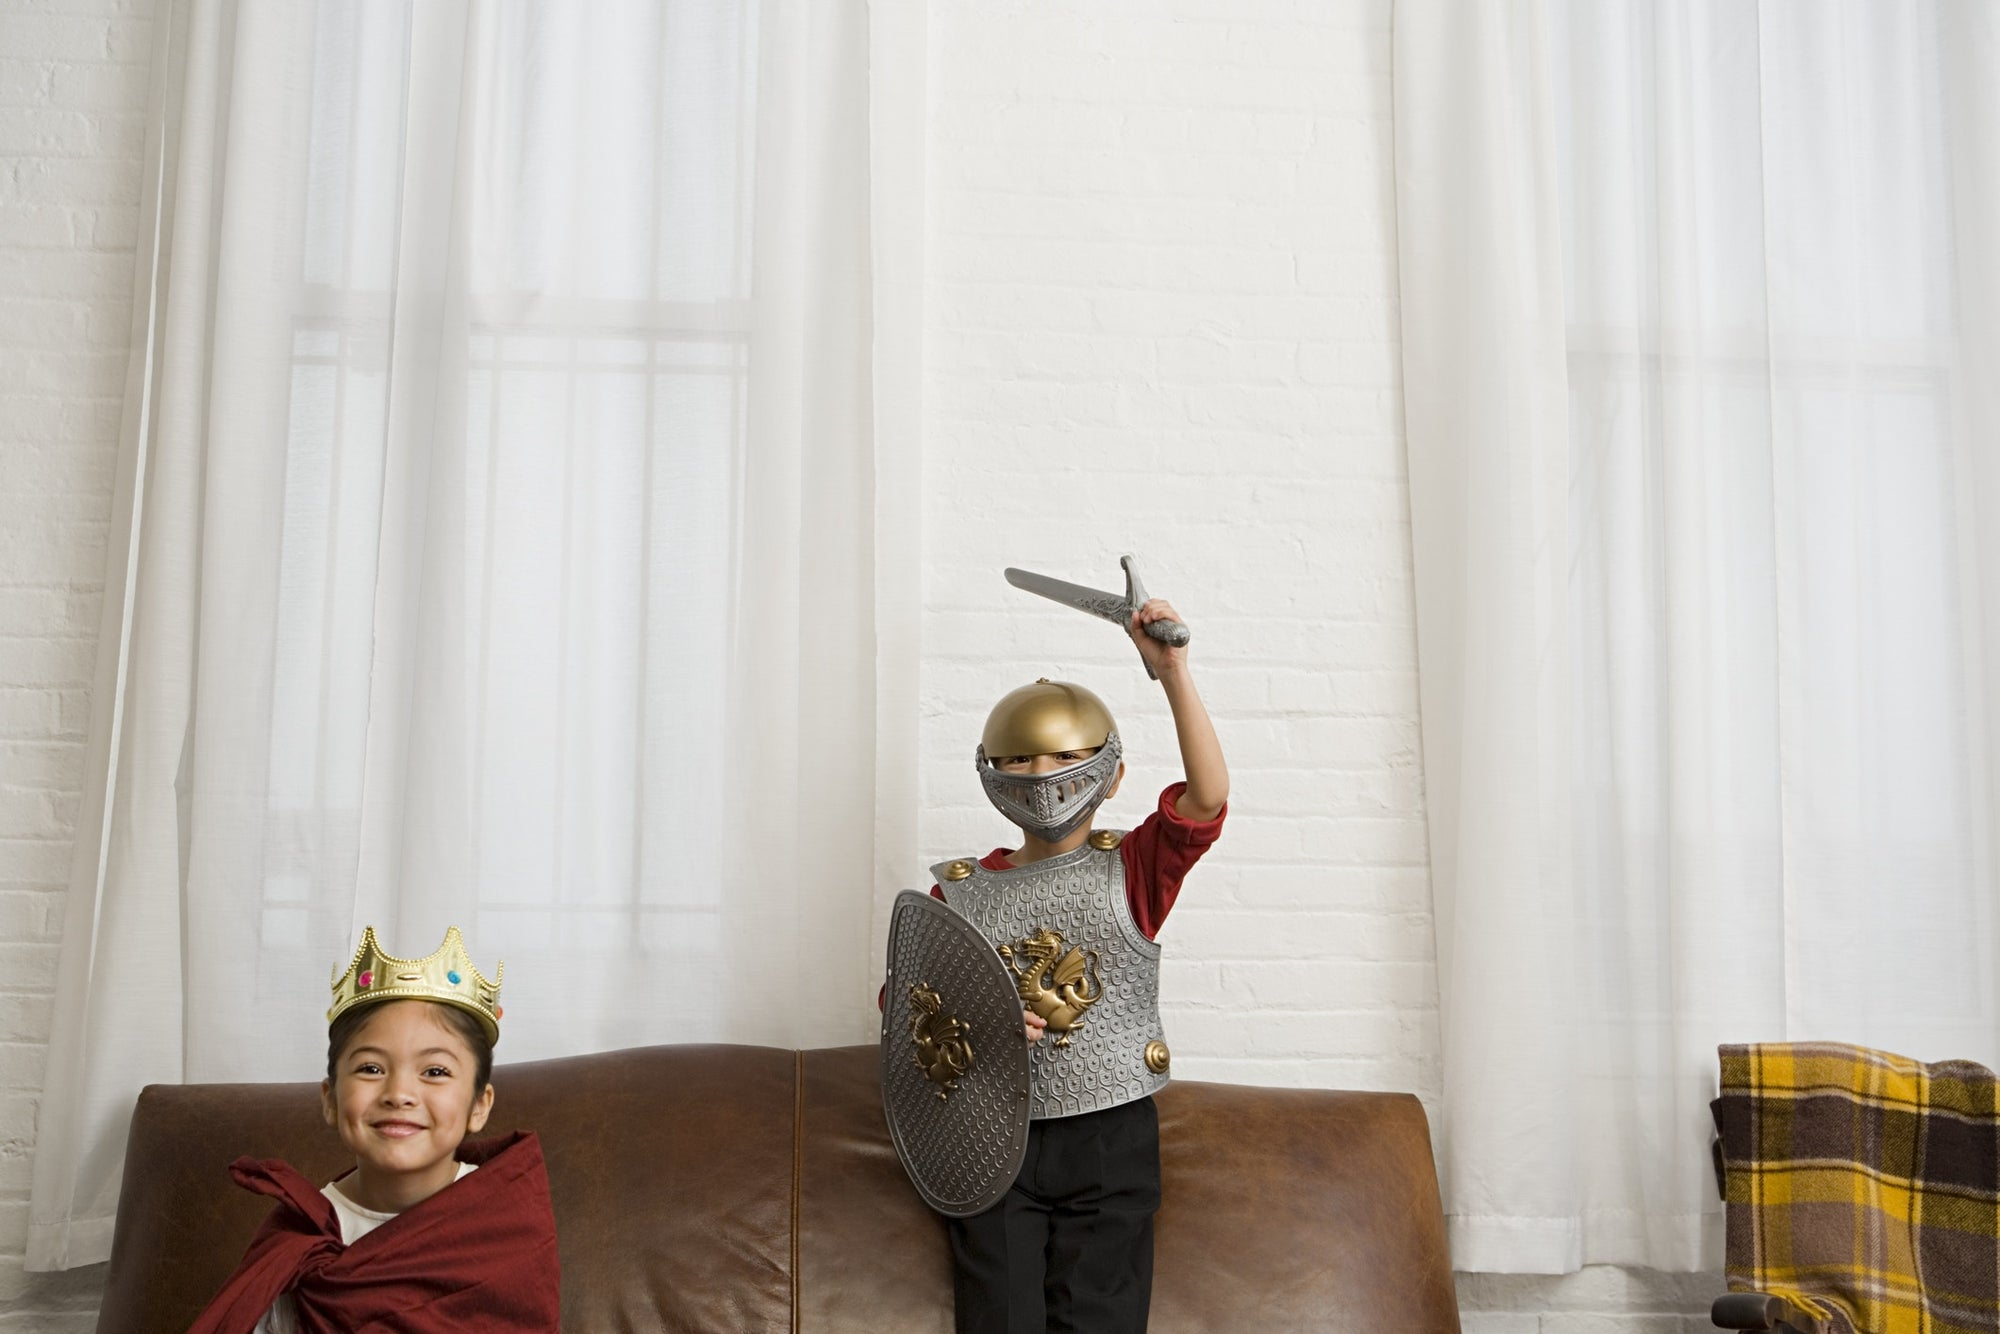 Boys in knight costume in living room